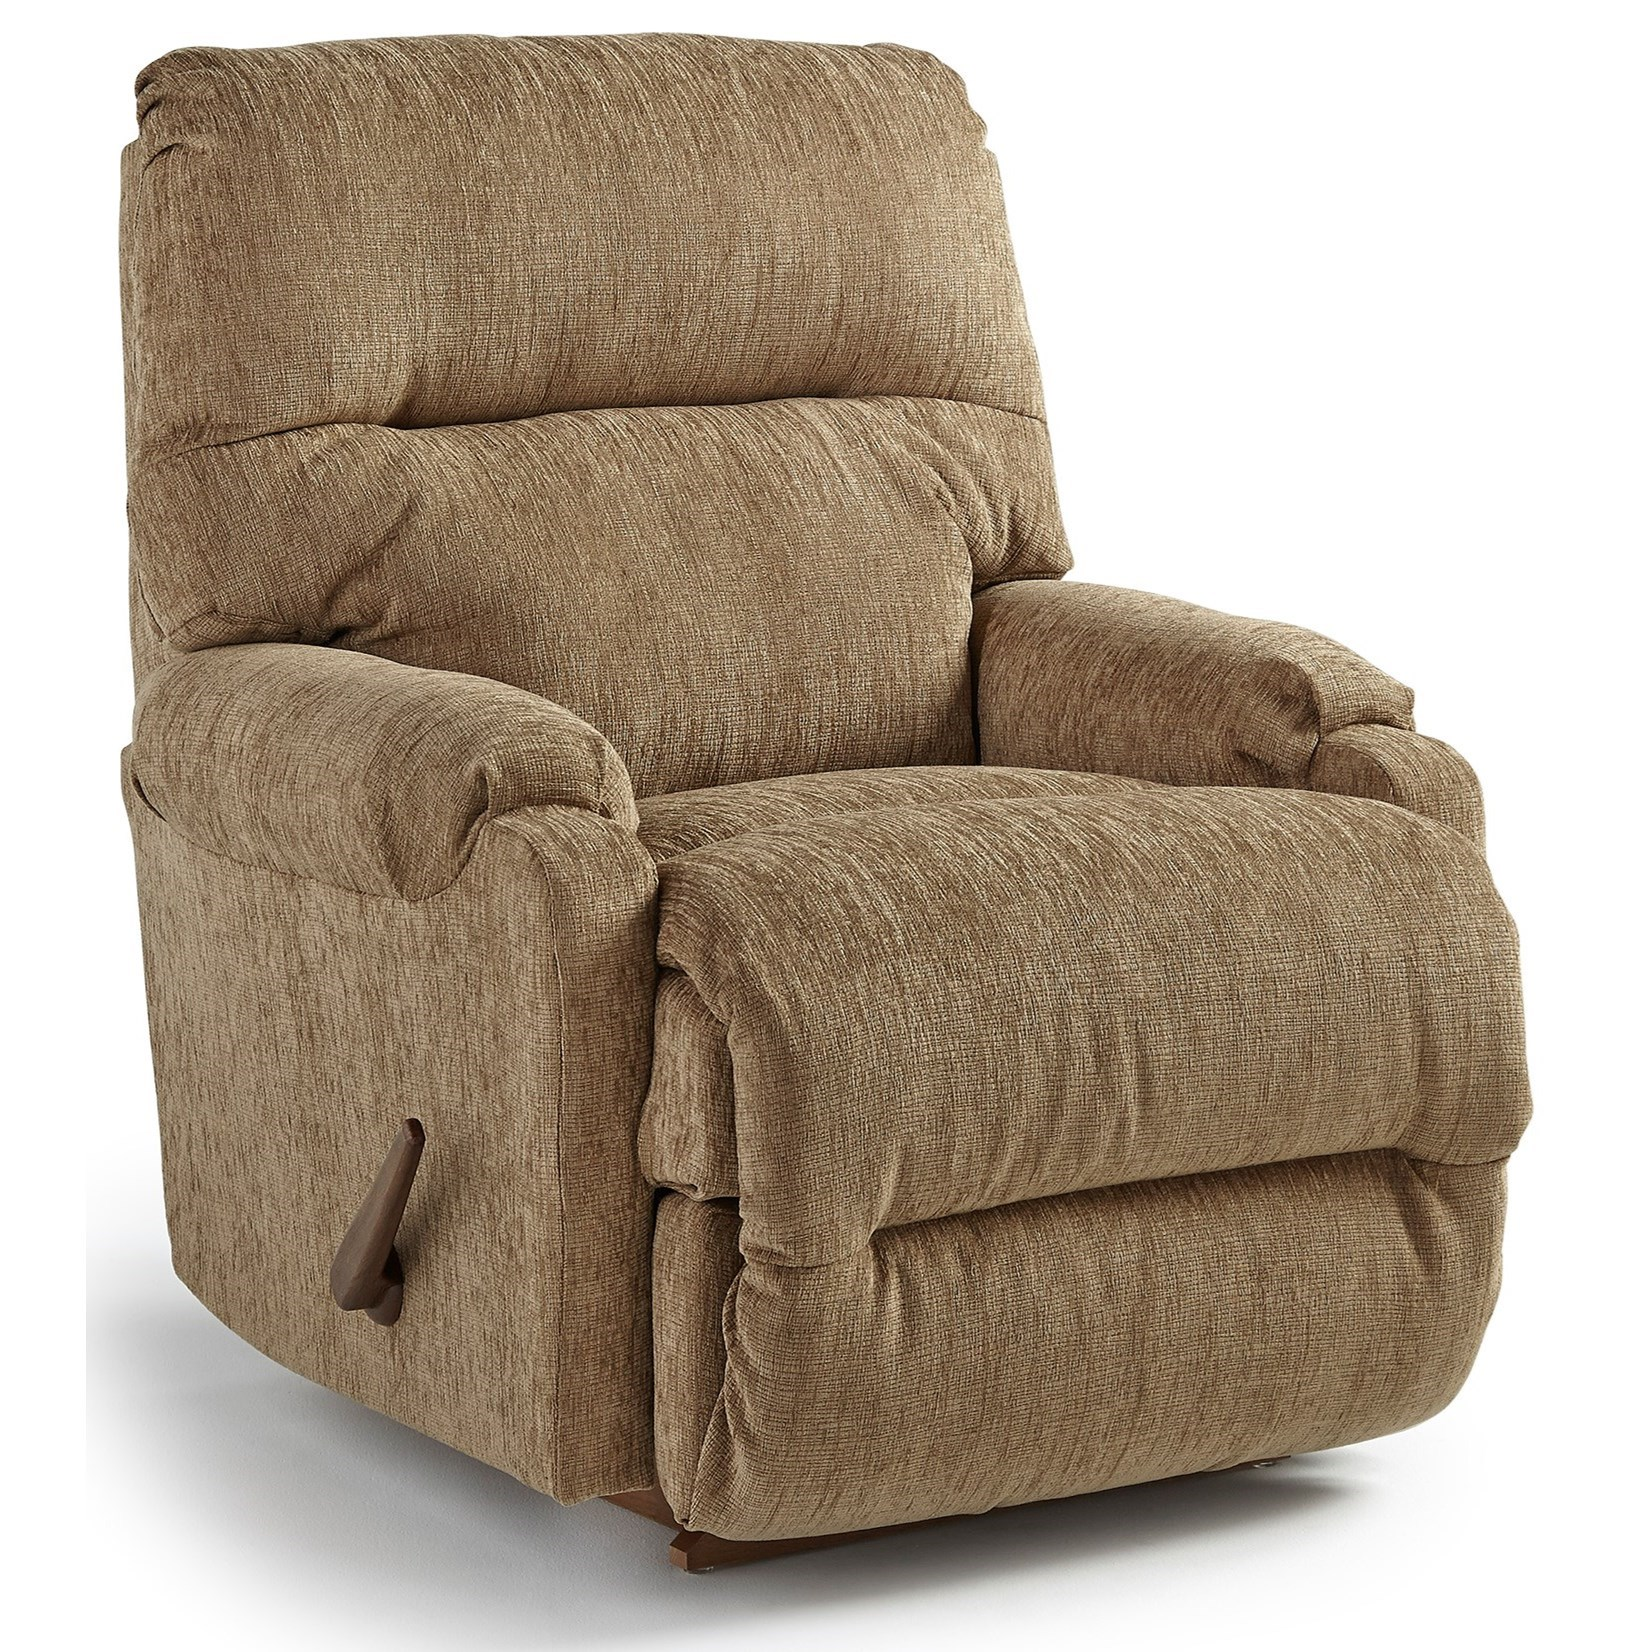 Cannes Swivel Rocker Recliner by Bravo Furniture at Bennett's Furniture and Mattresses